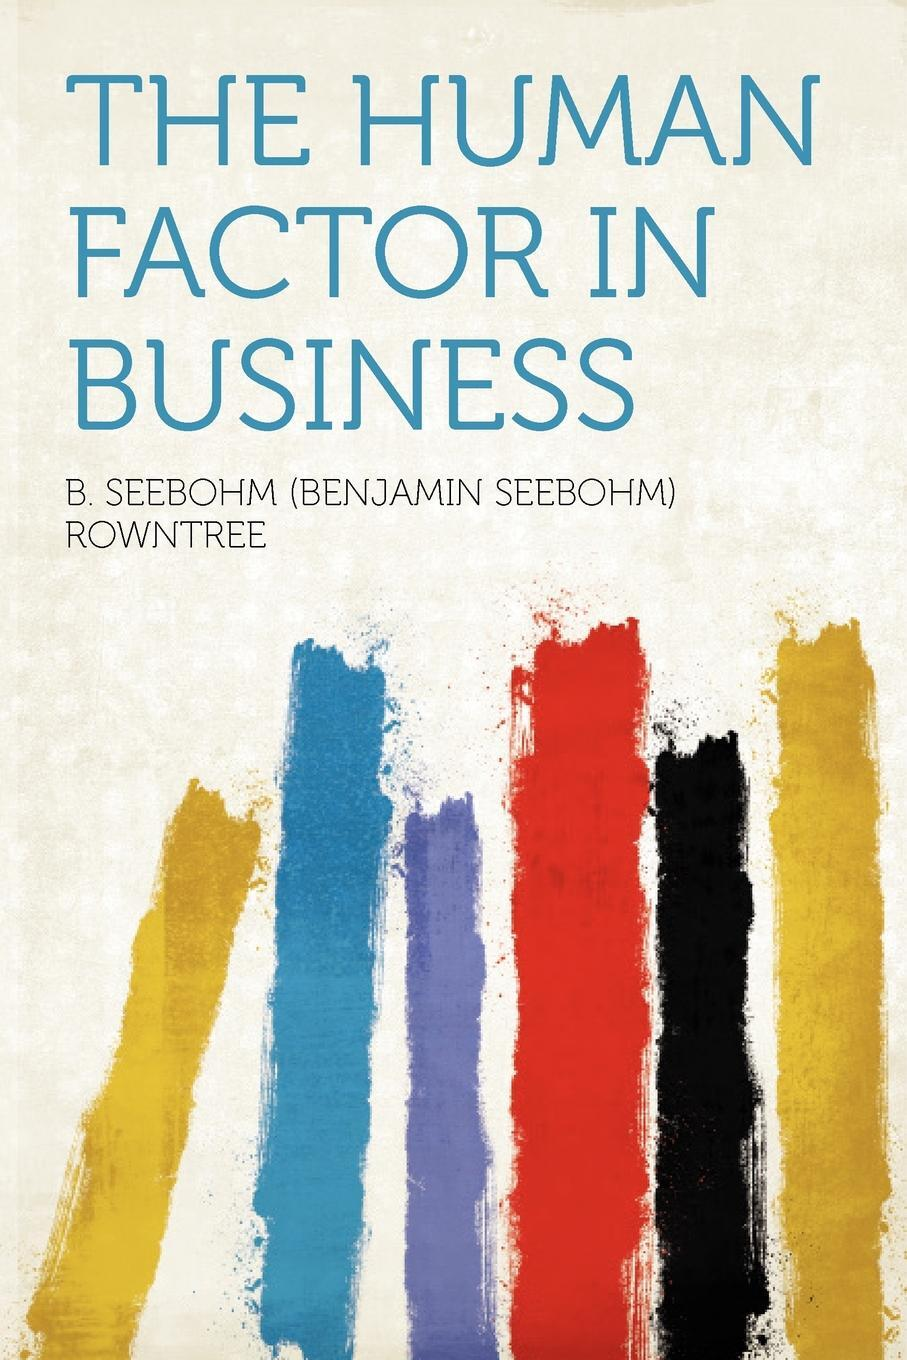 The Human Factor in Business